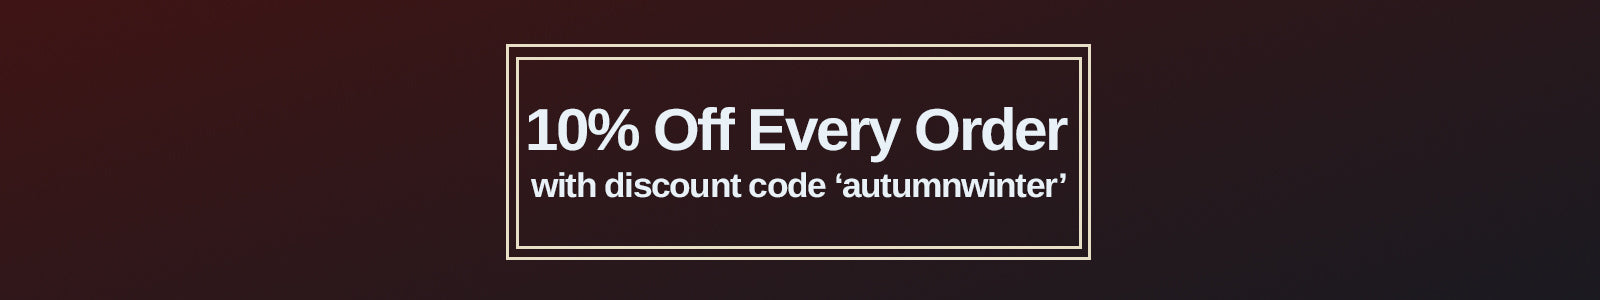 10 per cent off every order with discount code 'autumnwinter'